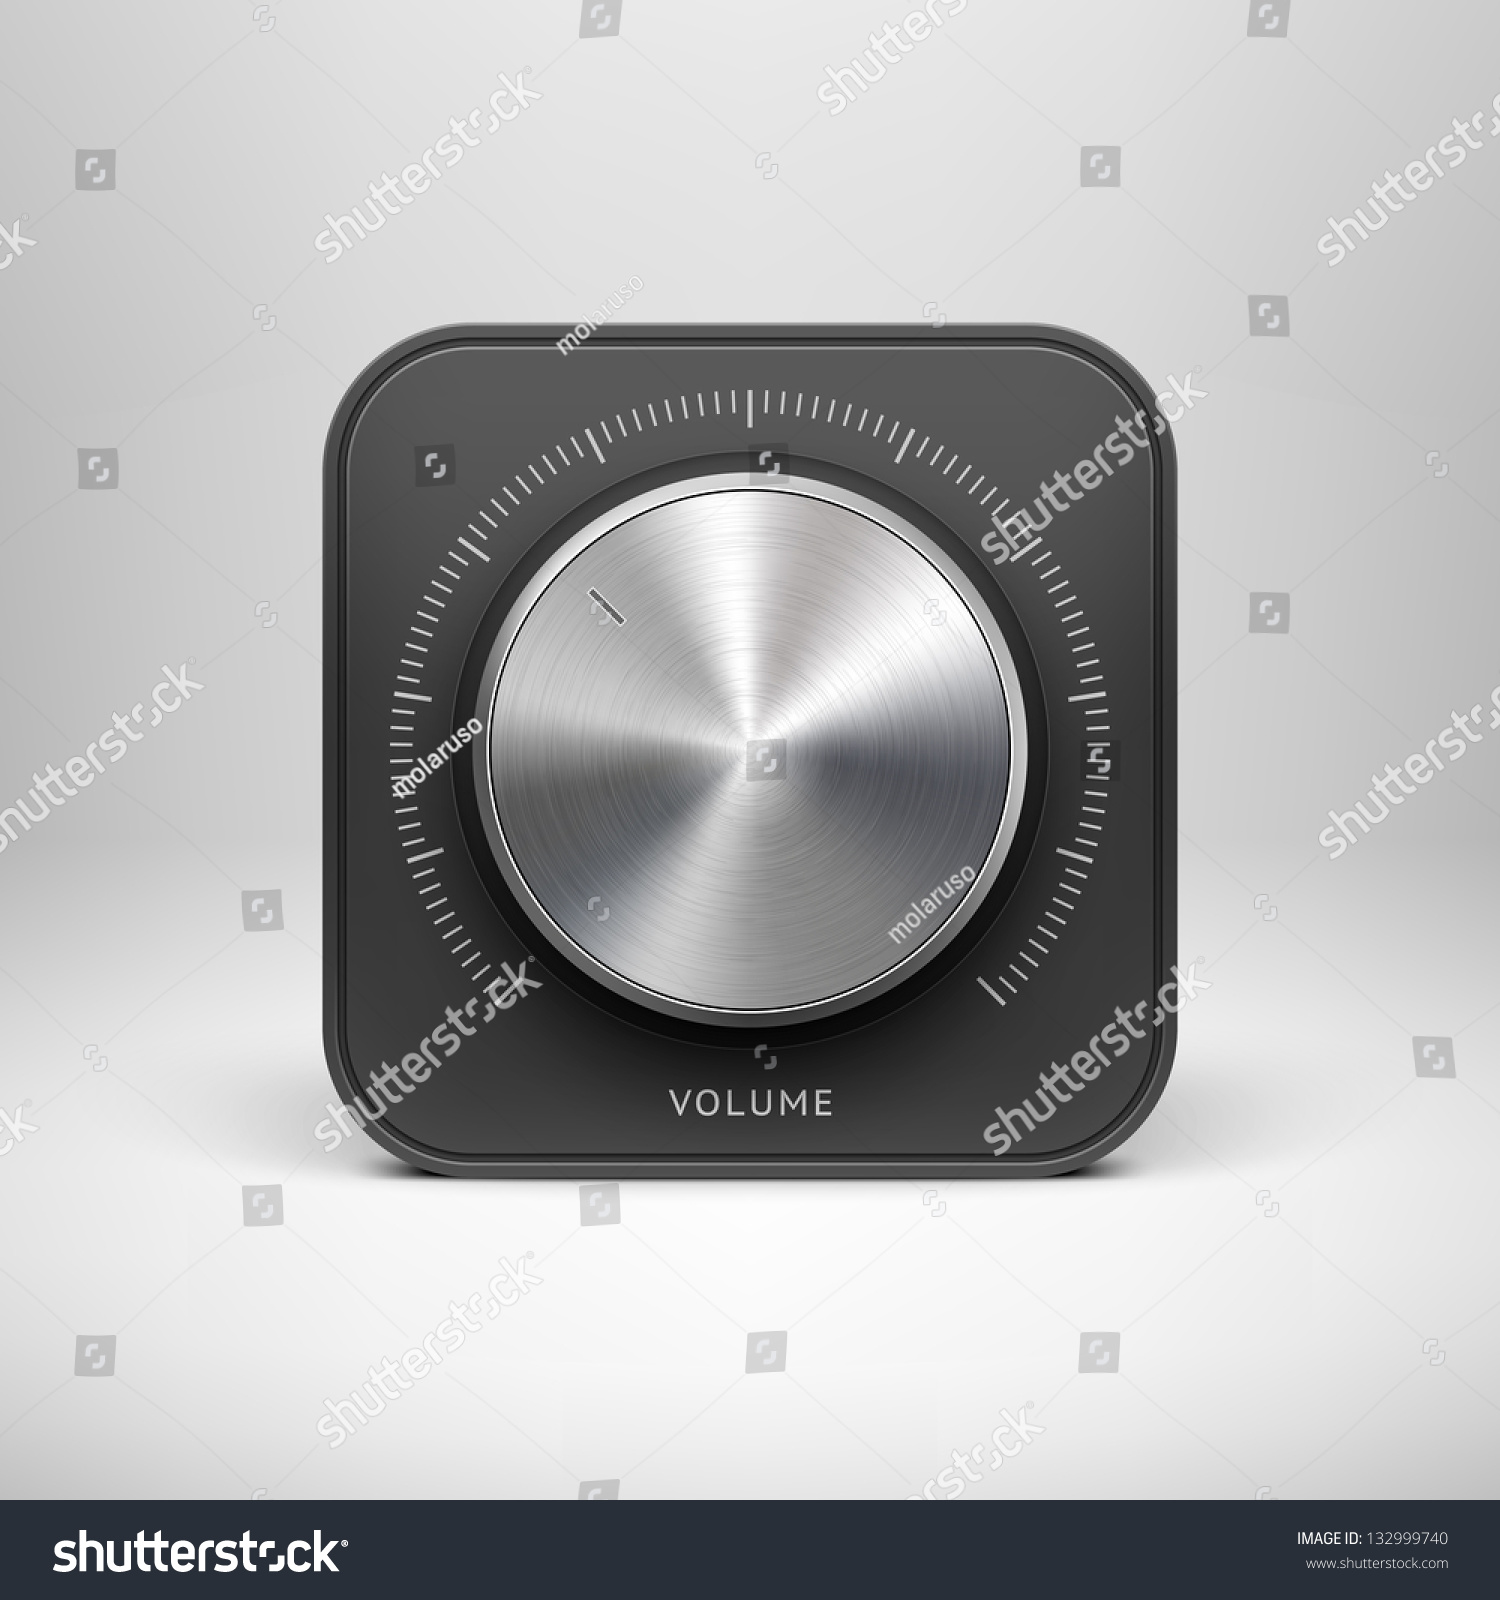 Volume Control Button : Abstract technology app icon with music button volume